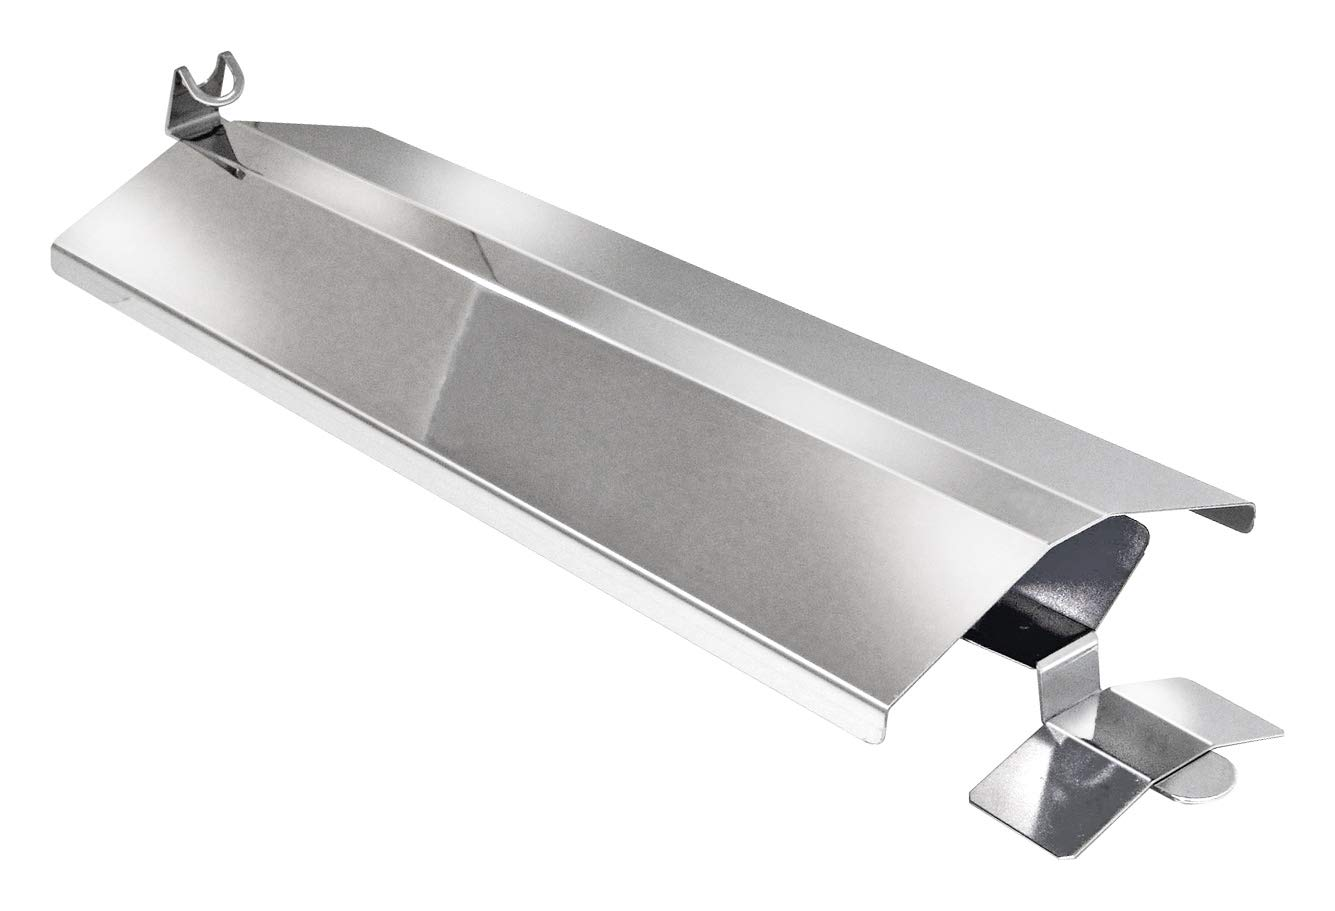 Magma Products 10-964, Radiant Plate, ChefsMate, Connoisseur Series Gas Grill